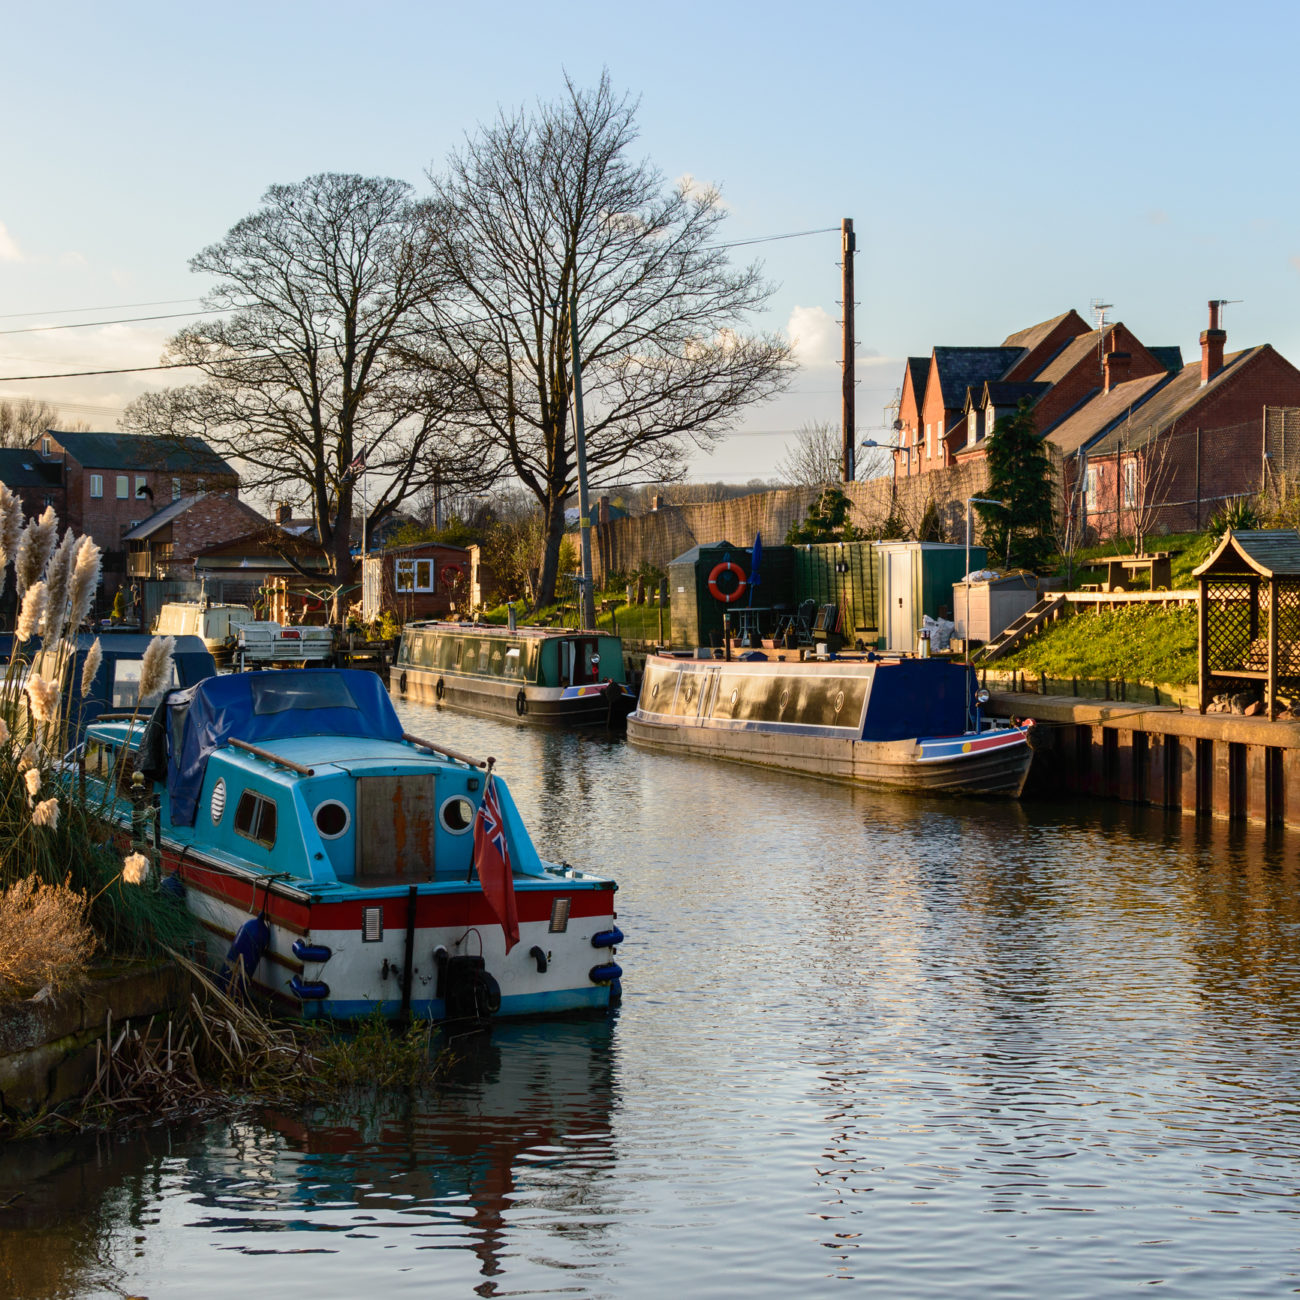 Longboats moored on the River Soar, Zouch, England.